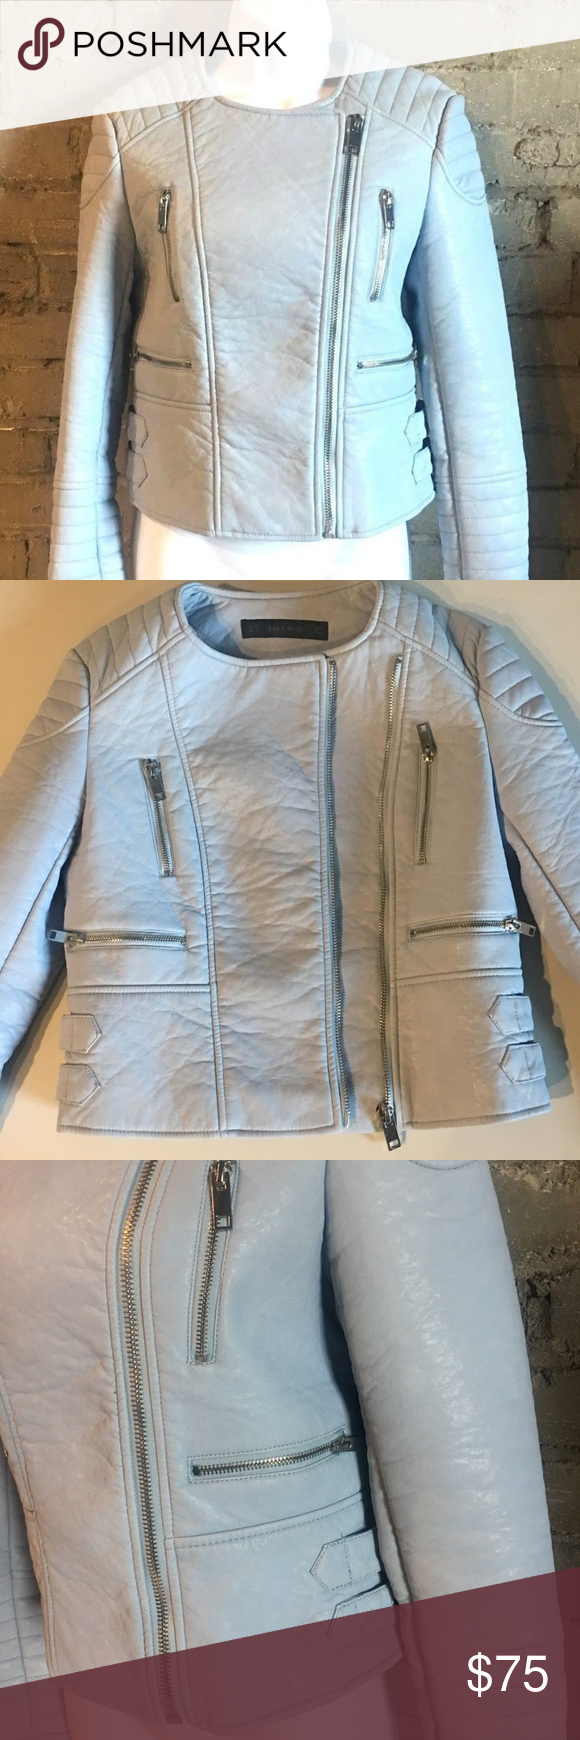 543cc18d Zara Basic Moto Style Jacket Faux Leather Zara Basic Moto Style Jacket  Women's Size Medium Baby